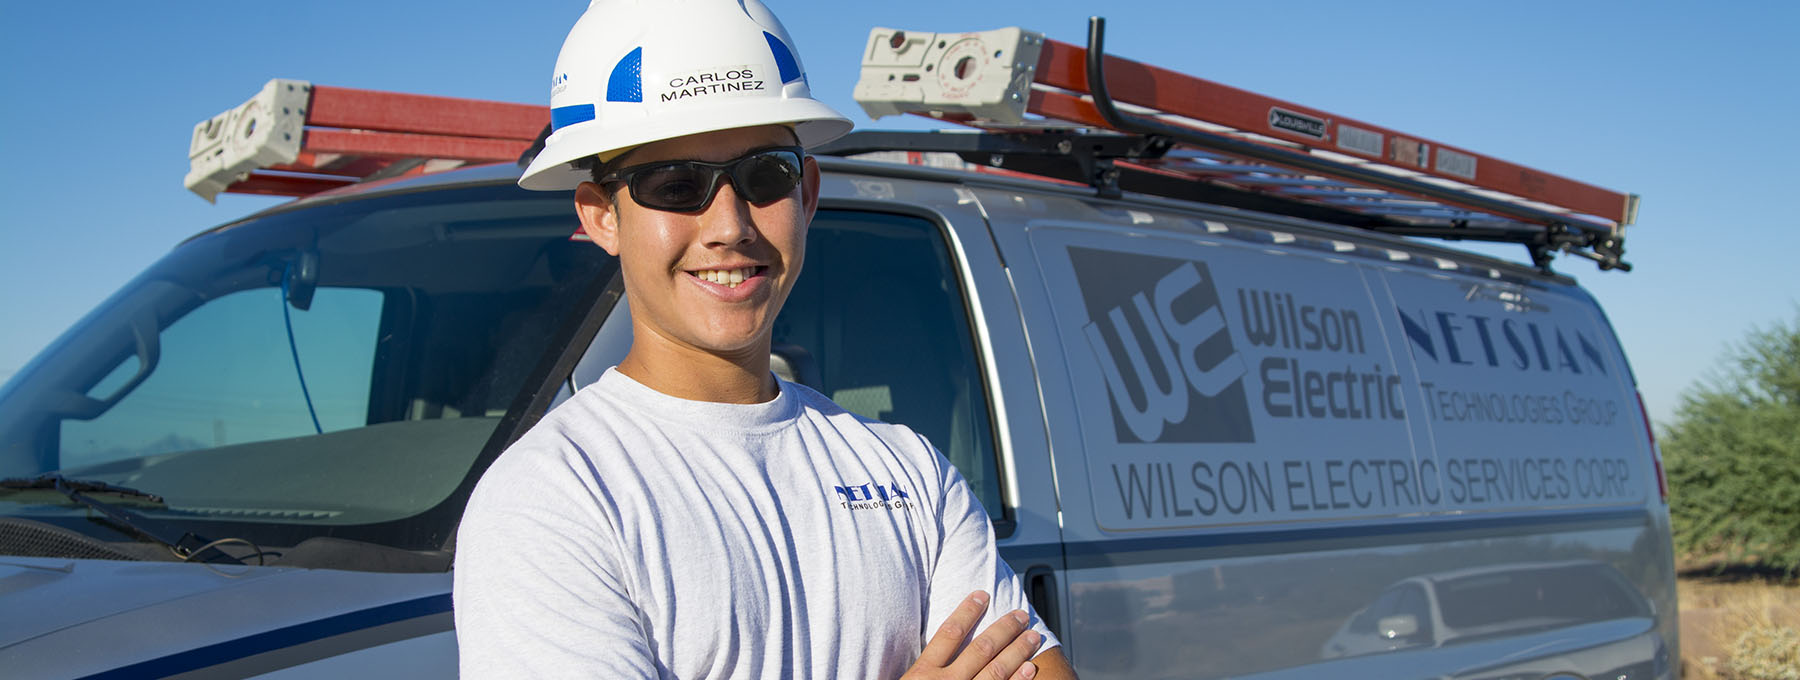 Low Voltage Commercial Electrician, Phoenix, AZ